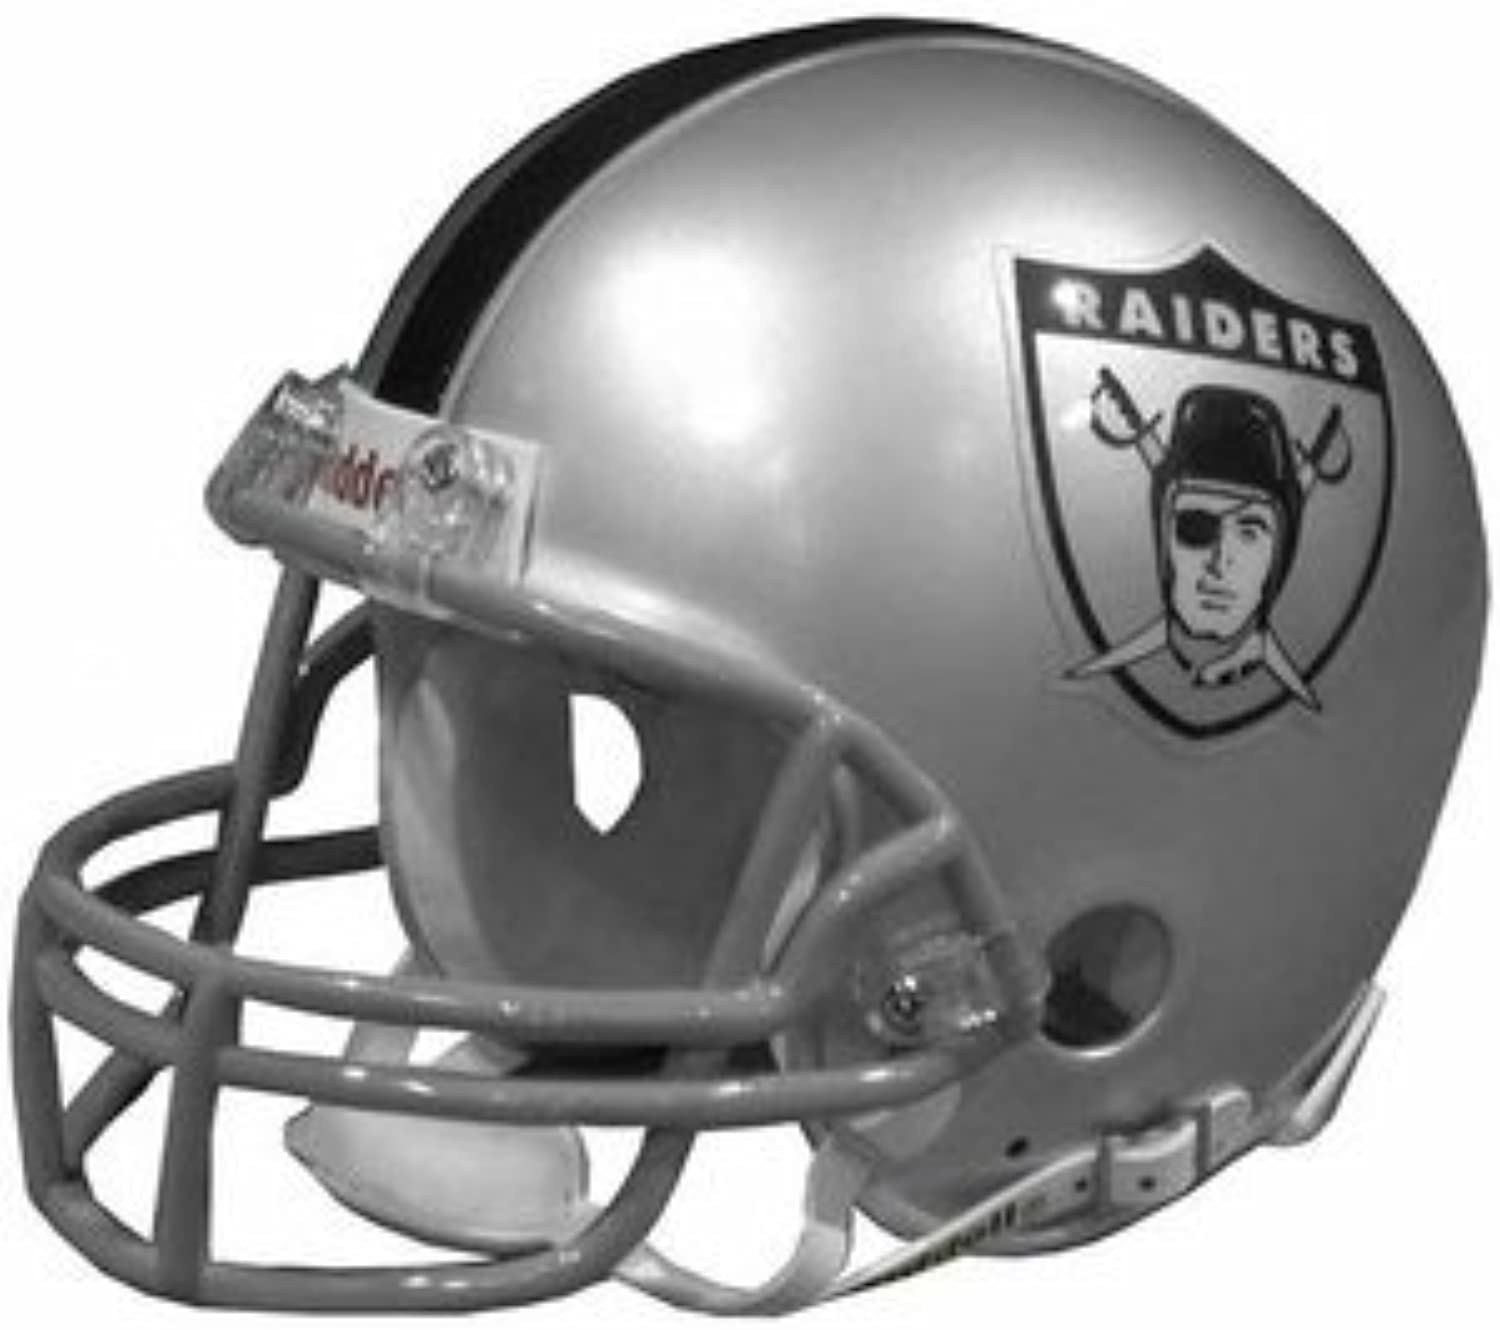 Oakland Raiders 1963 Football Helmet